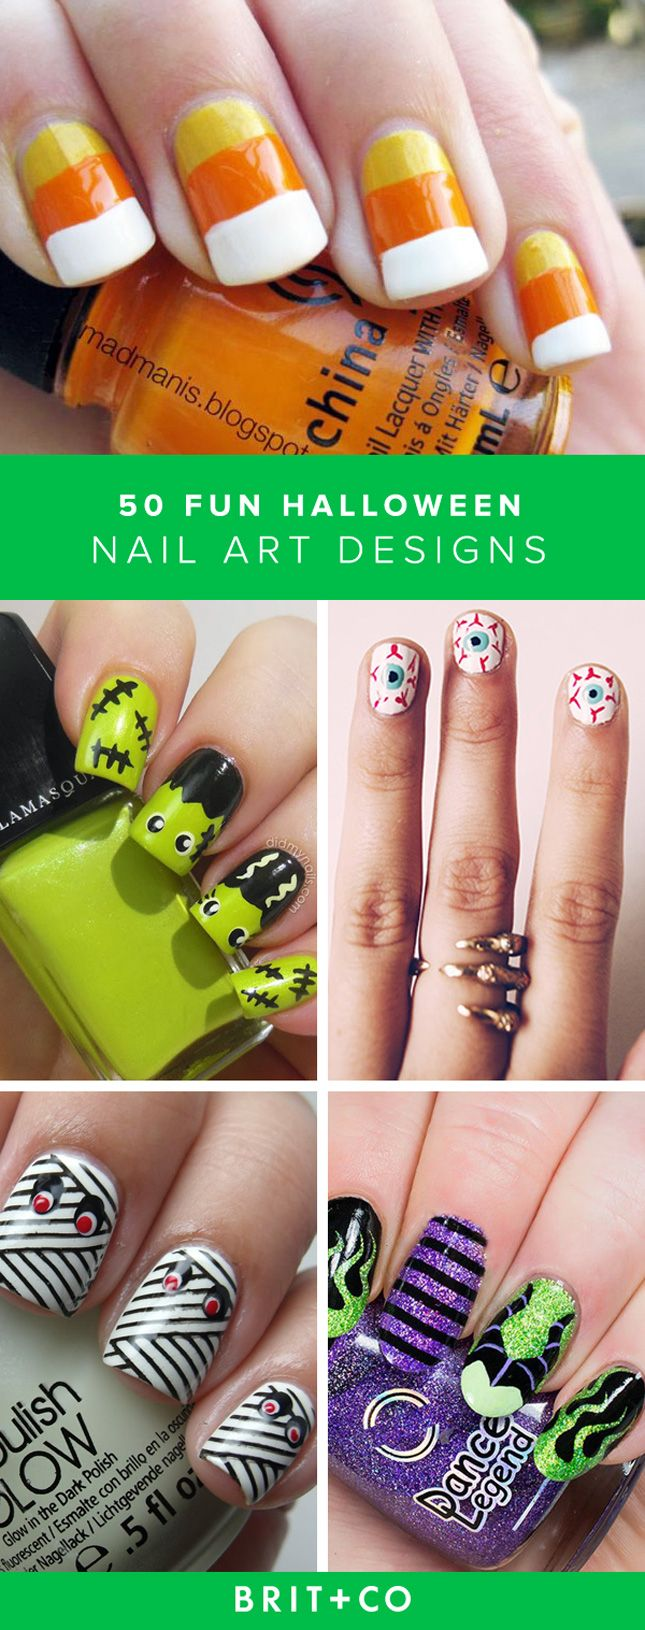 198 best Nails images on Pinterest | Nail design, Christmas nails ...